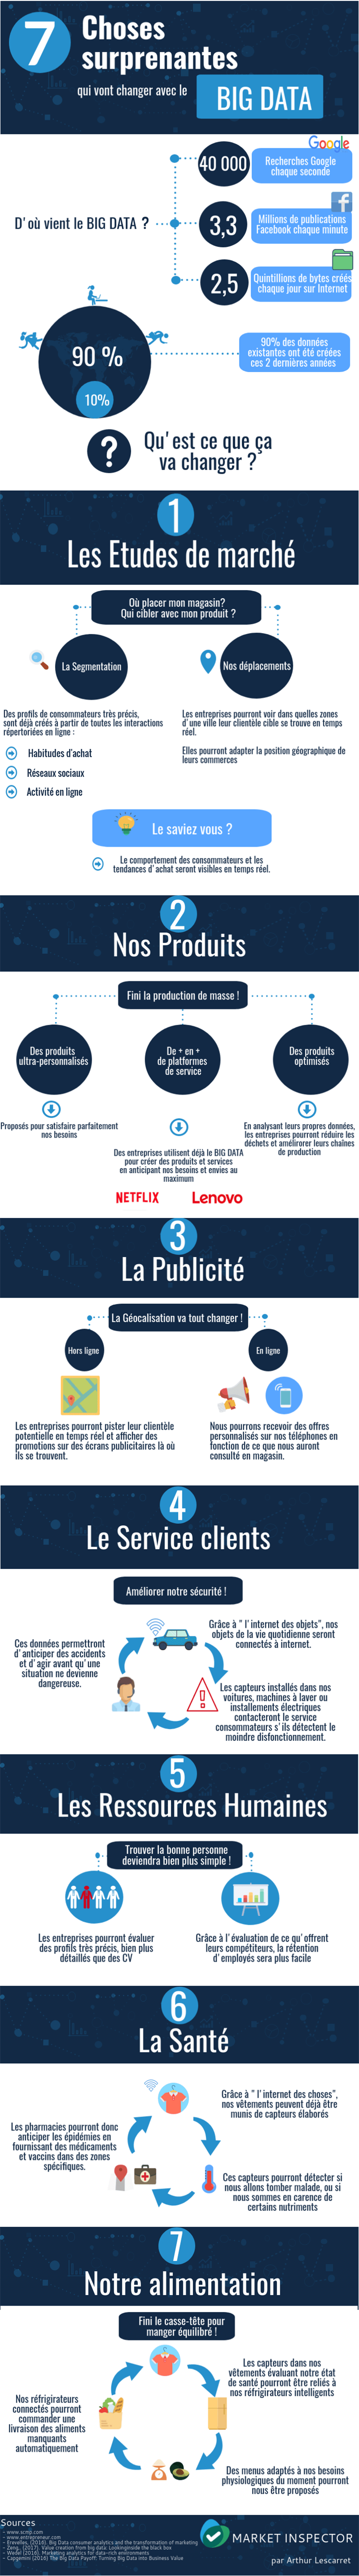 7 choses surprenantes qui vont changer avec le Big Data